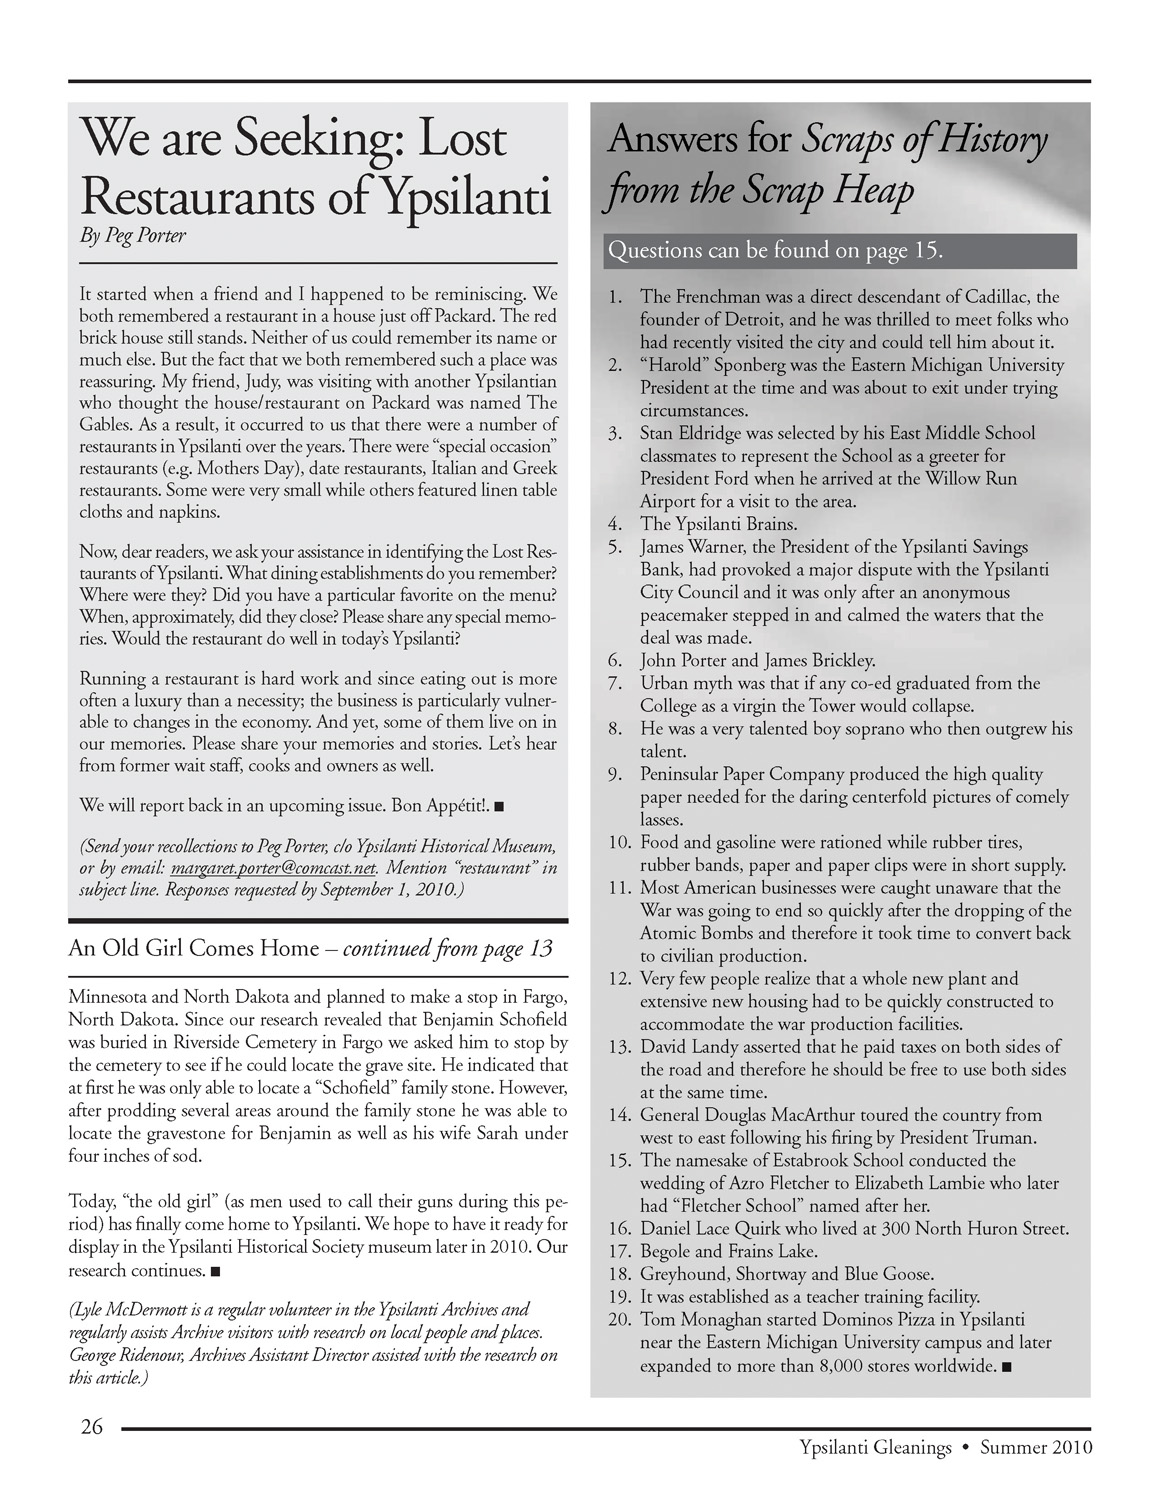 We are Seeking: Lost Restaurants of Ypsilanti image